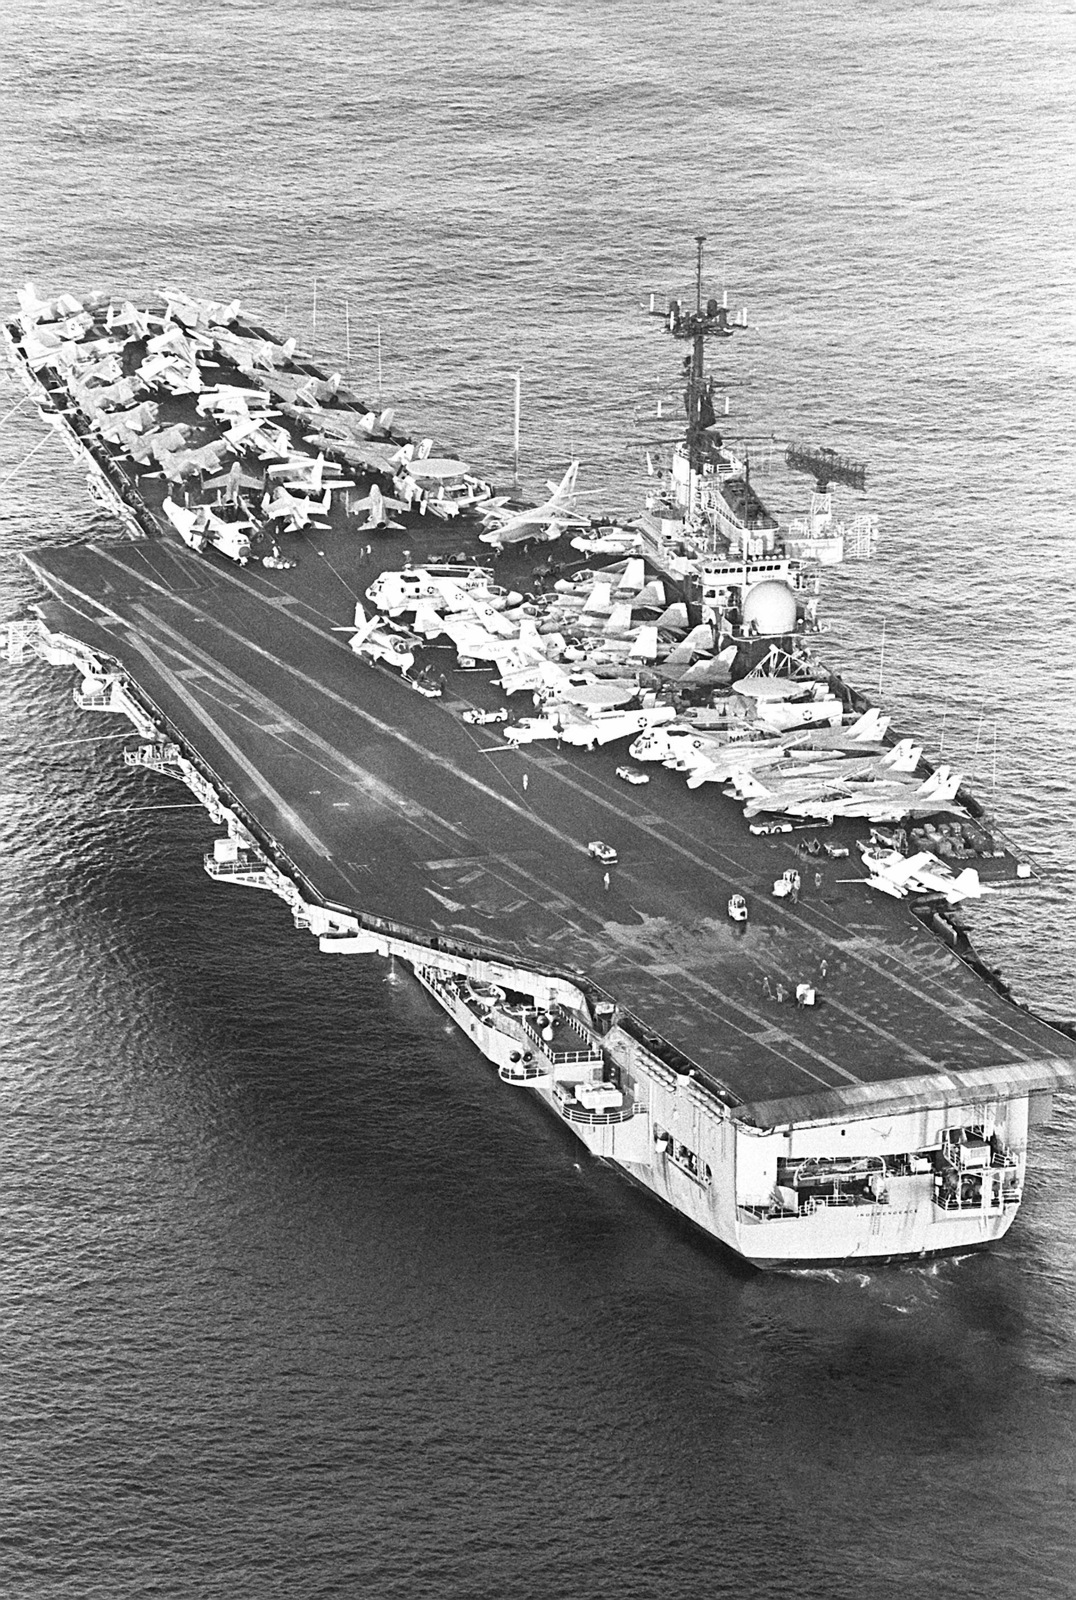 An aerial port quarter view of the aircraft carrier USS INDEPENDENCE (CV 62) underway. The INDEPENDENCE is operating off the coast of Lebanon in support of the US Marines that have been assigned to Beirut as part of a multinational peacekeeping force